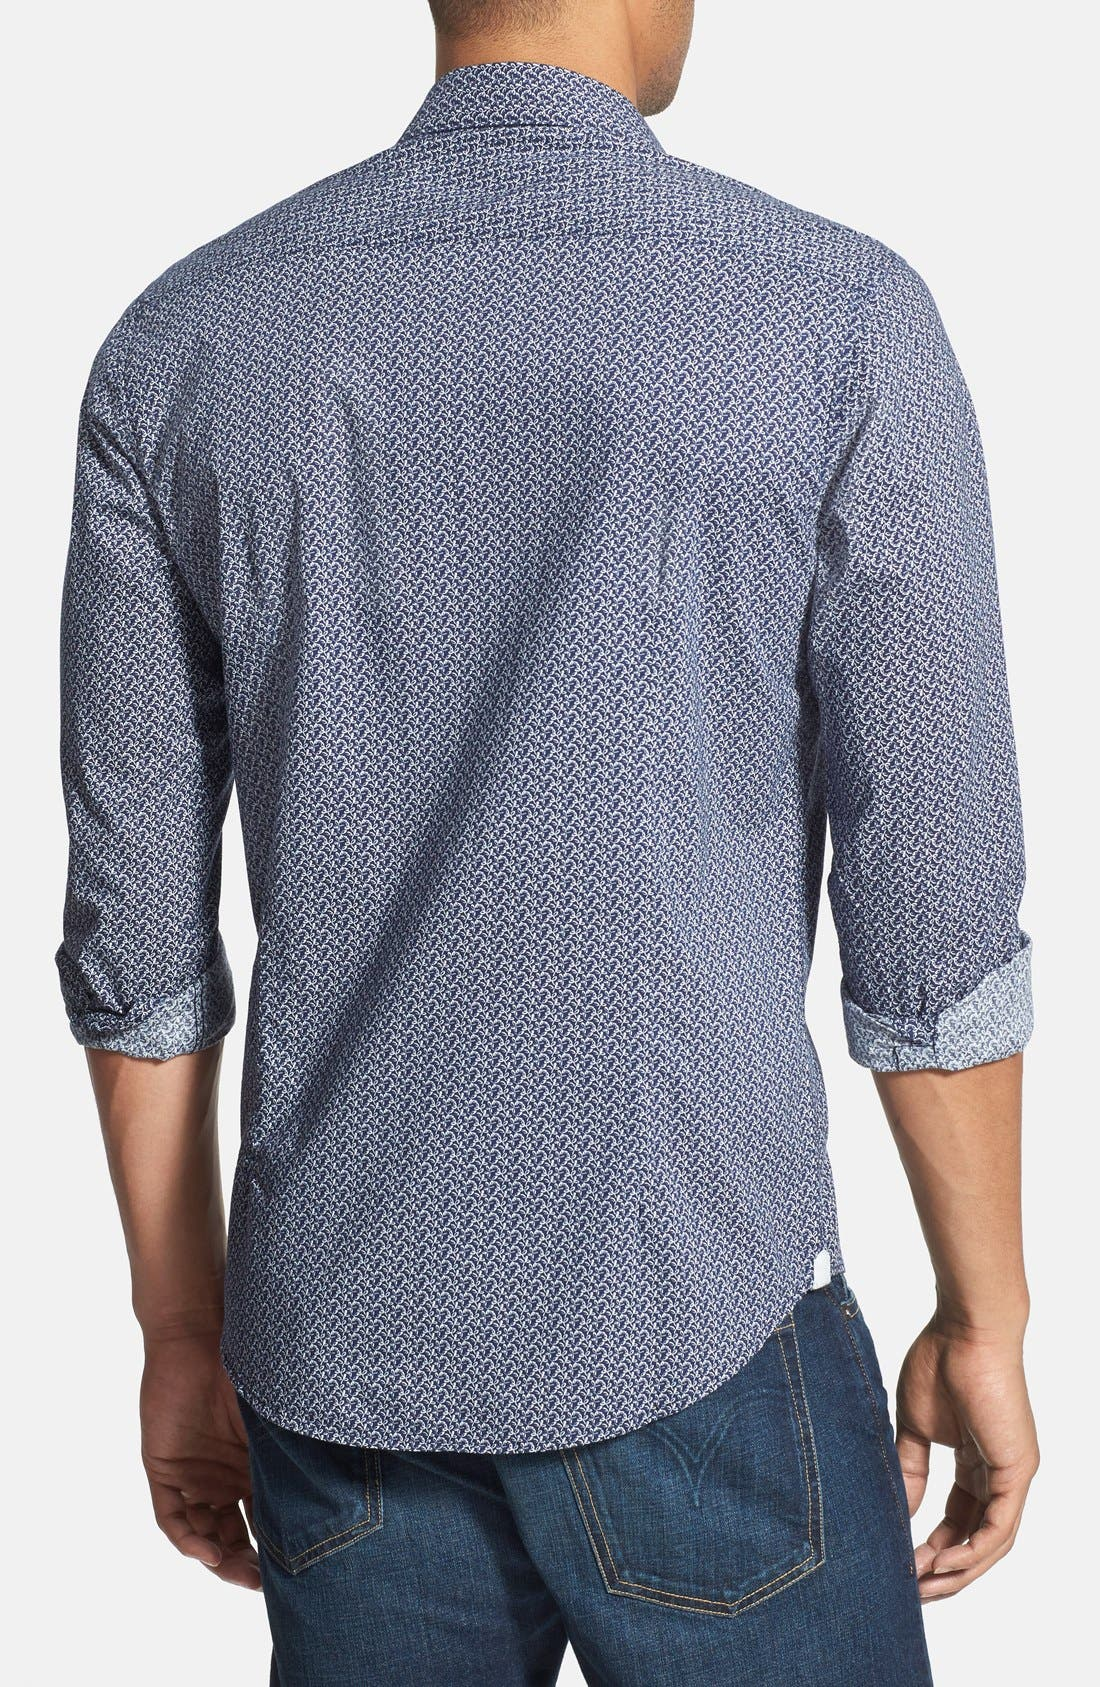 'Blueberry Hill' Trim Fit Print Woven Shirt,                             Alternate thumbnail 4, color,                             410